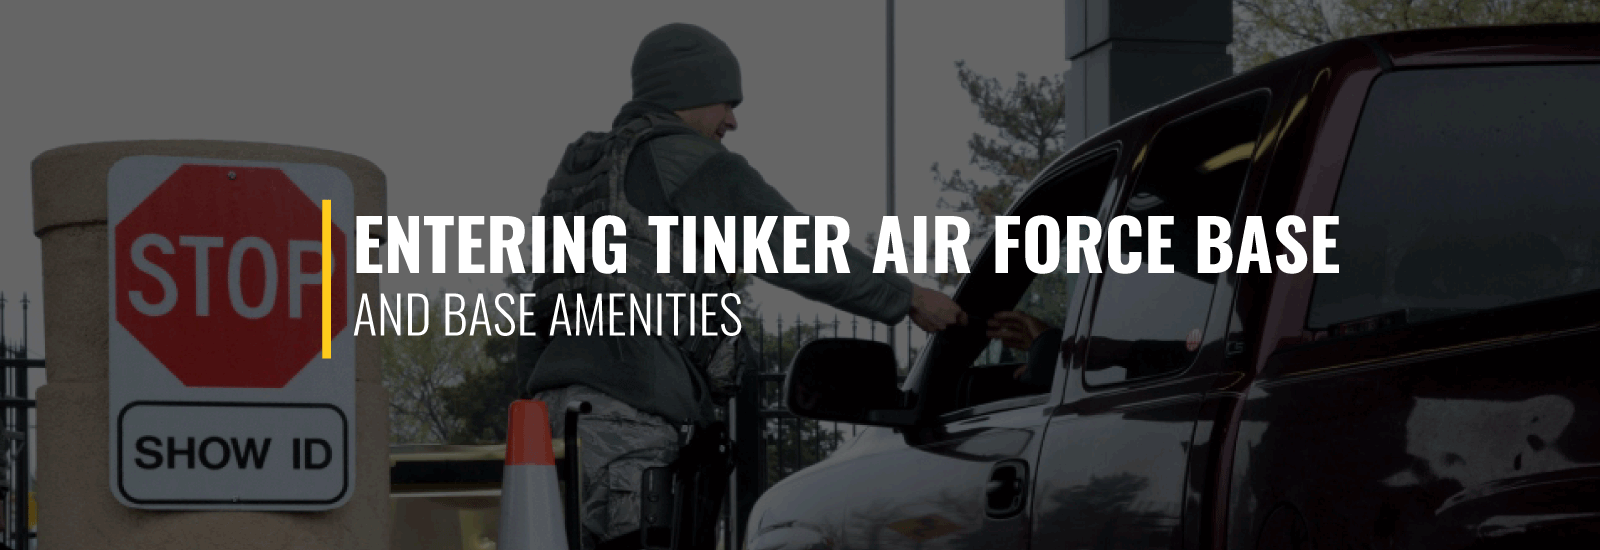 Entering Tinker Air Force Base and Amenities